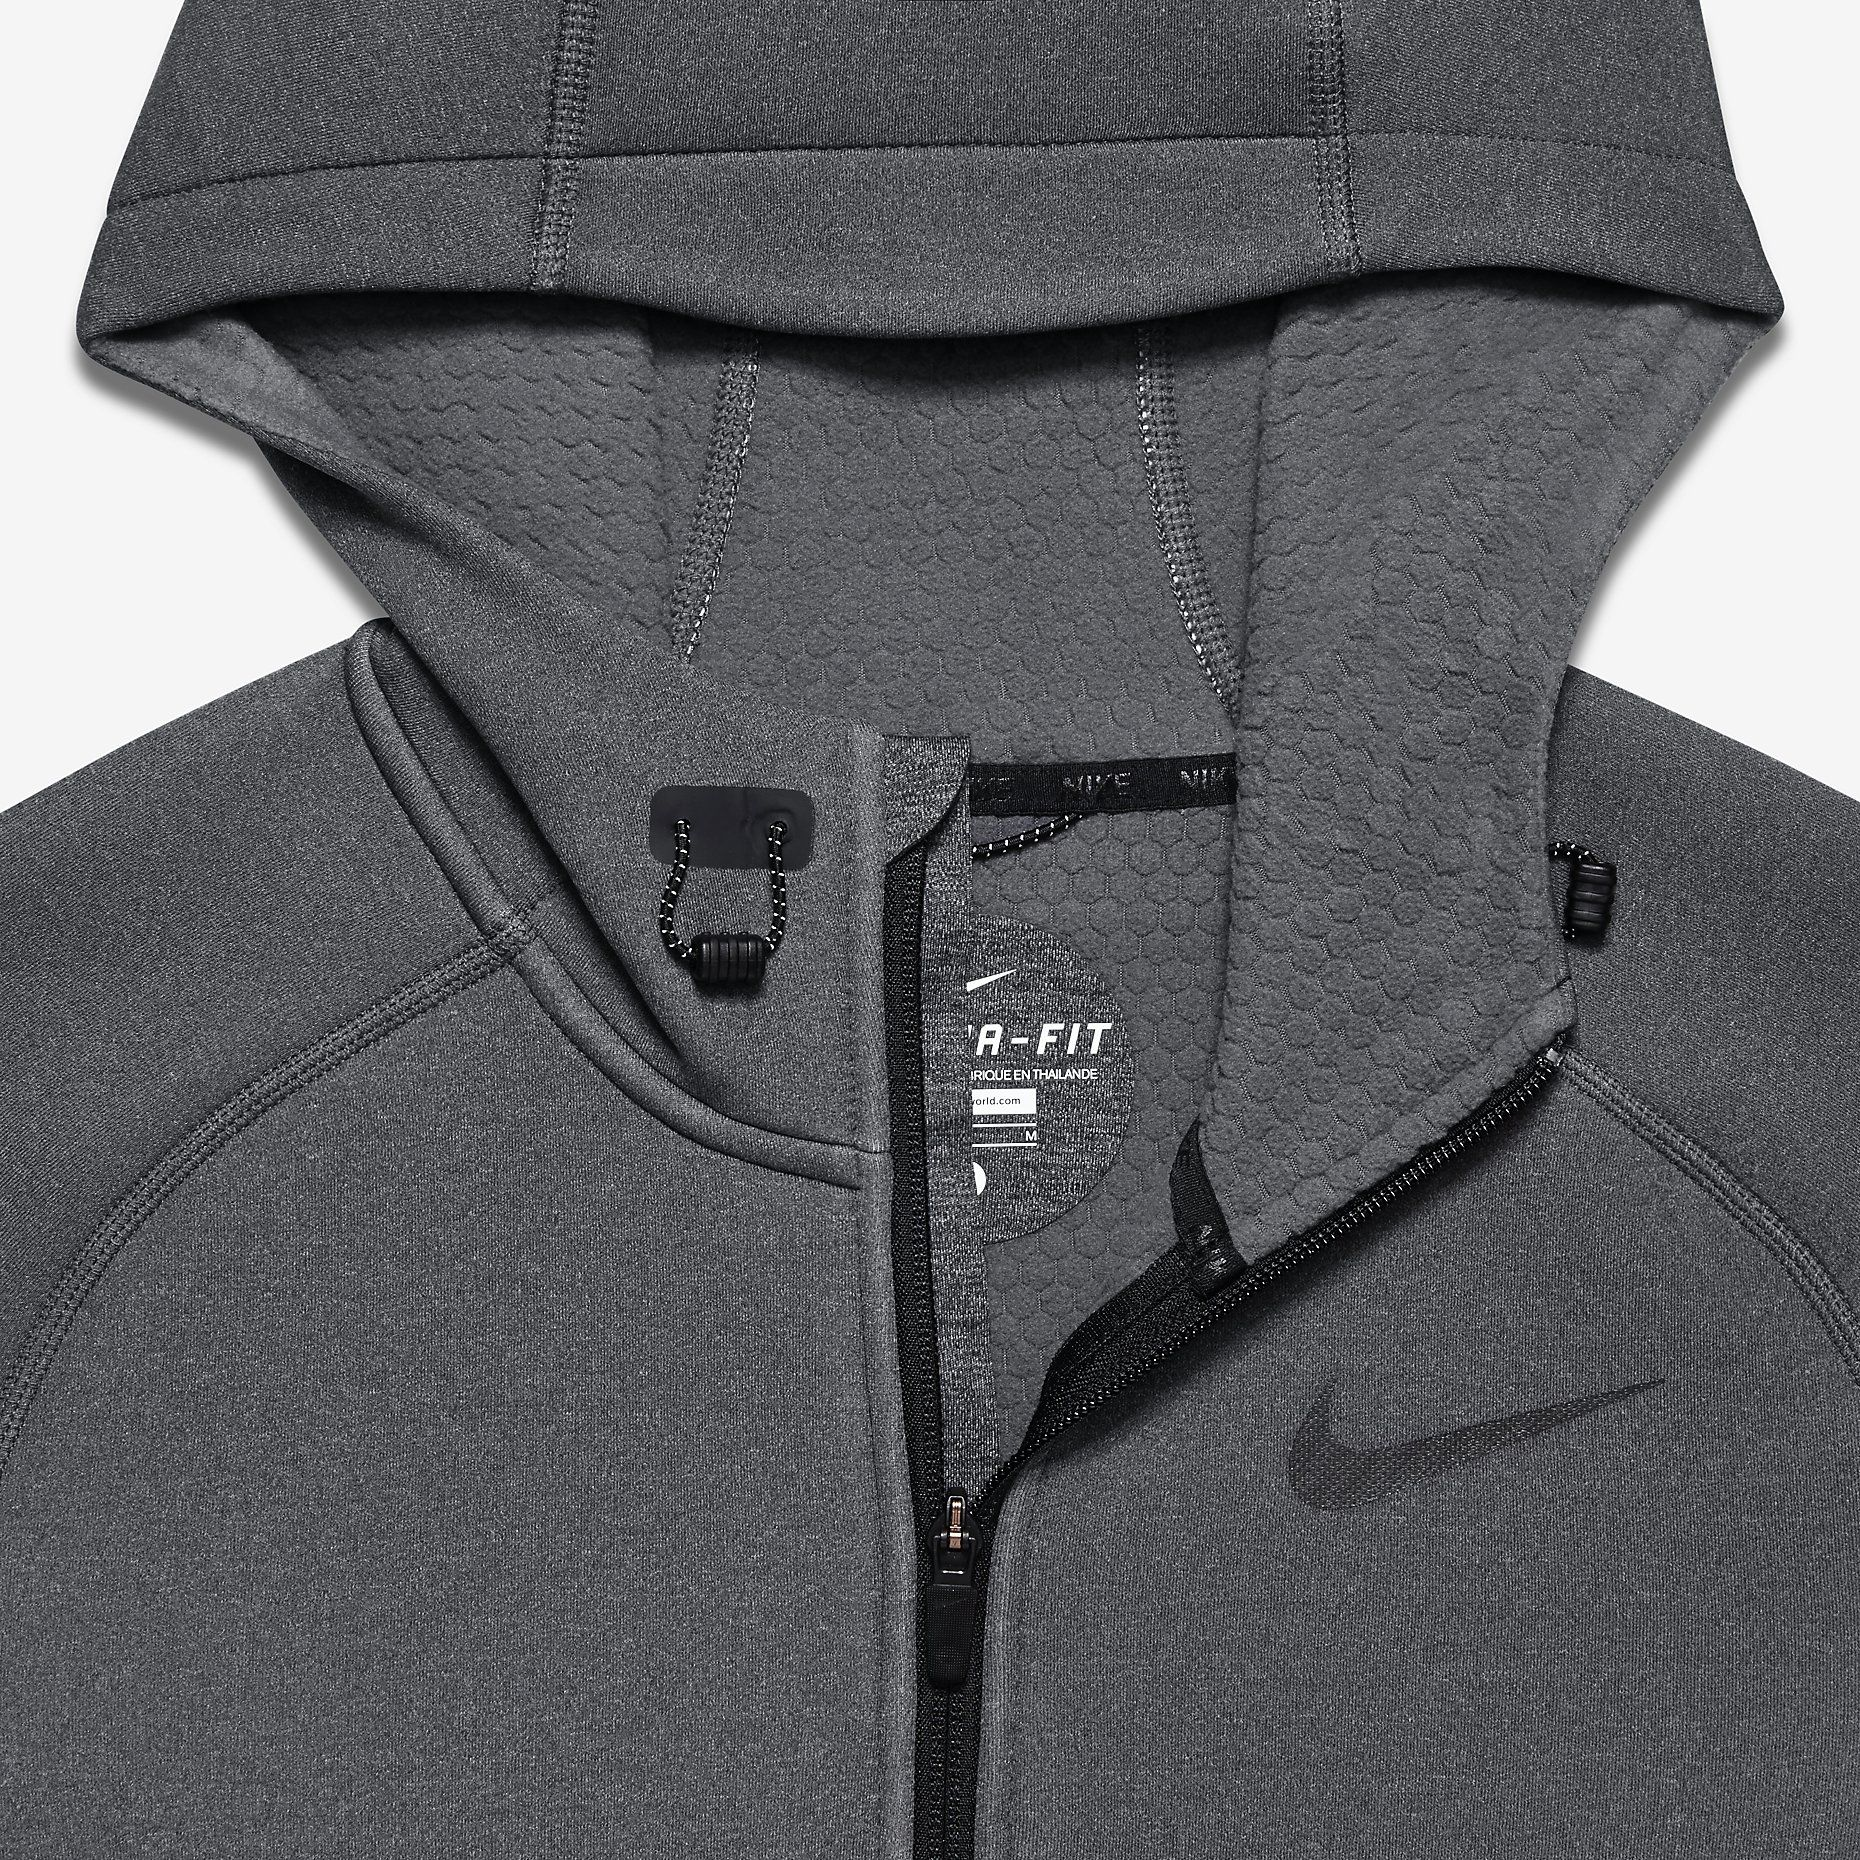 589df4e45d9b8b Nike Therma-Sphere Max Men s Training Jacket. Nike Store UK ...